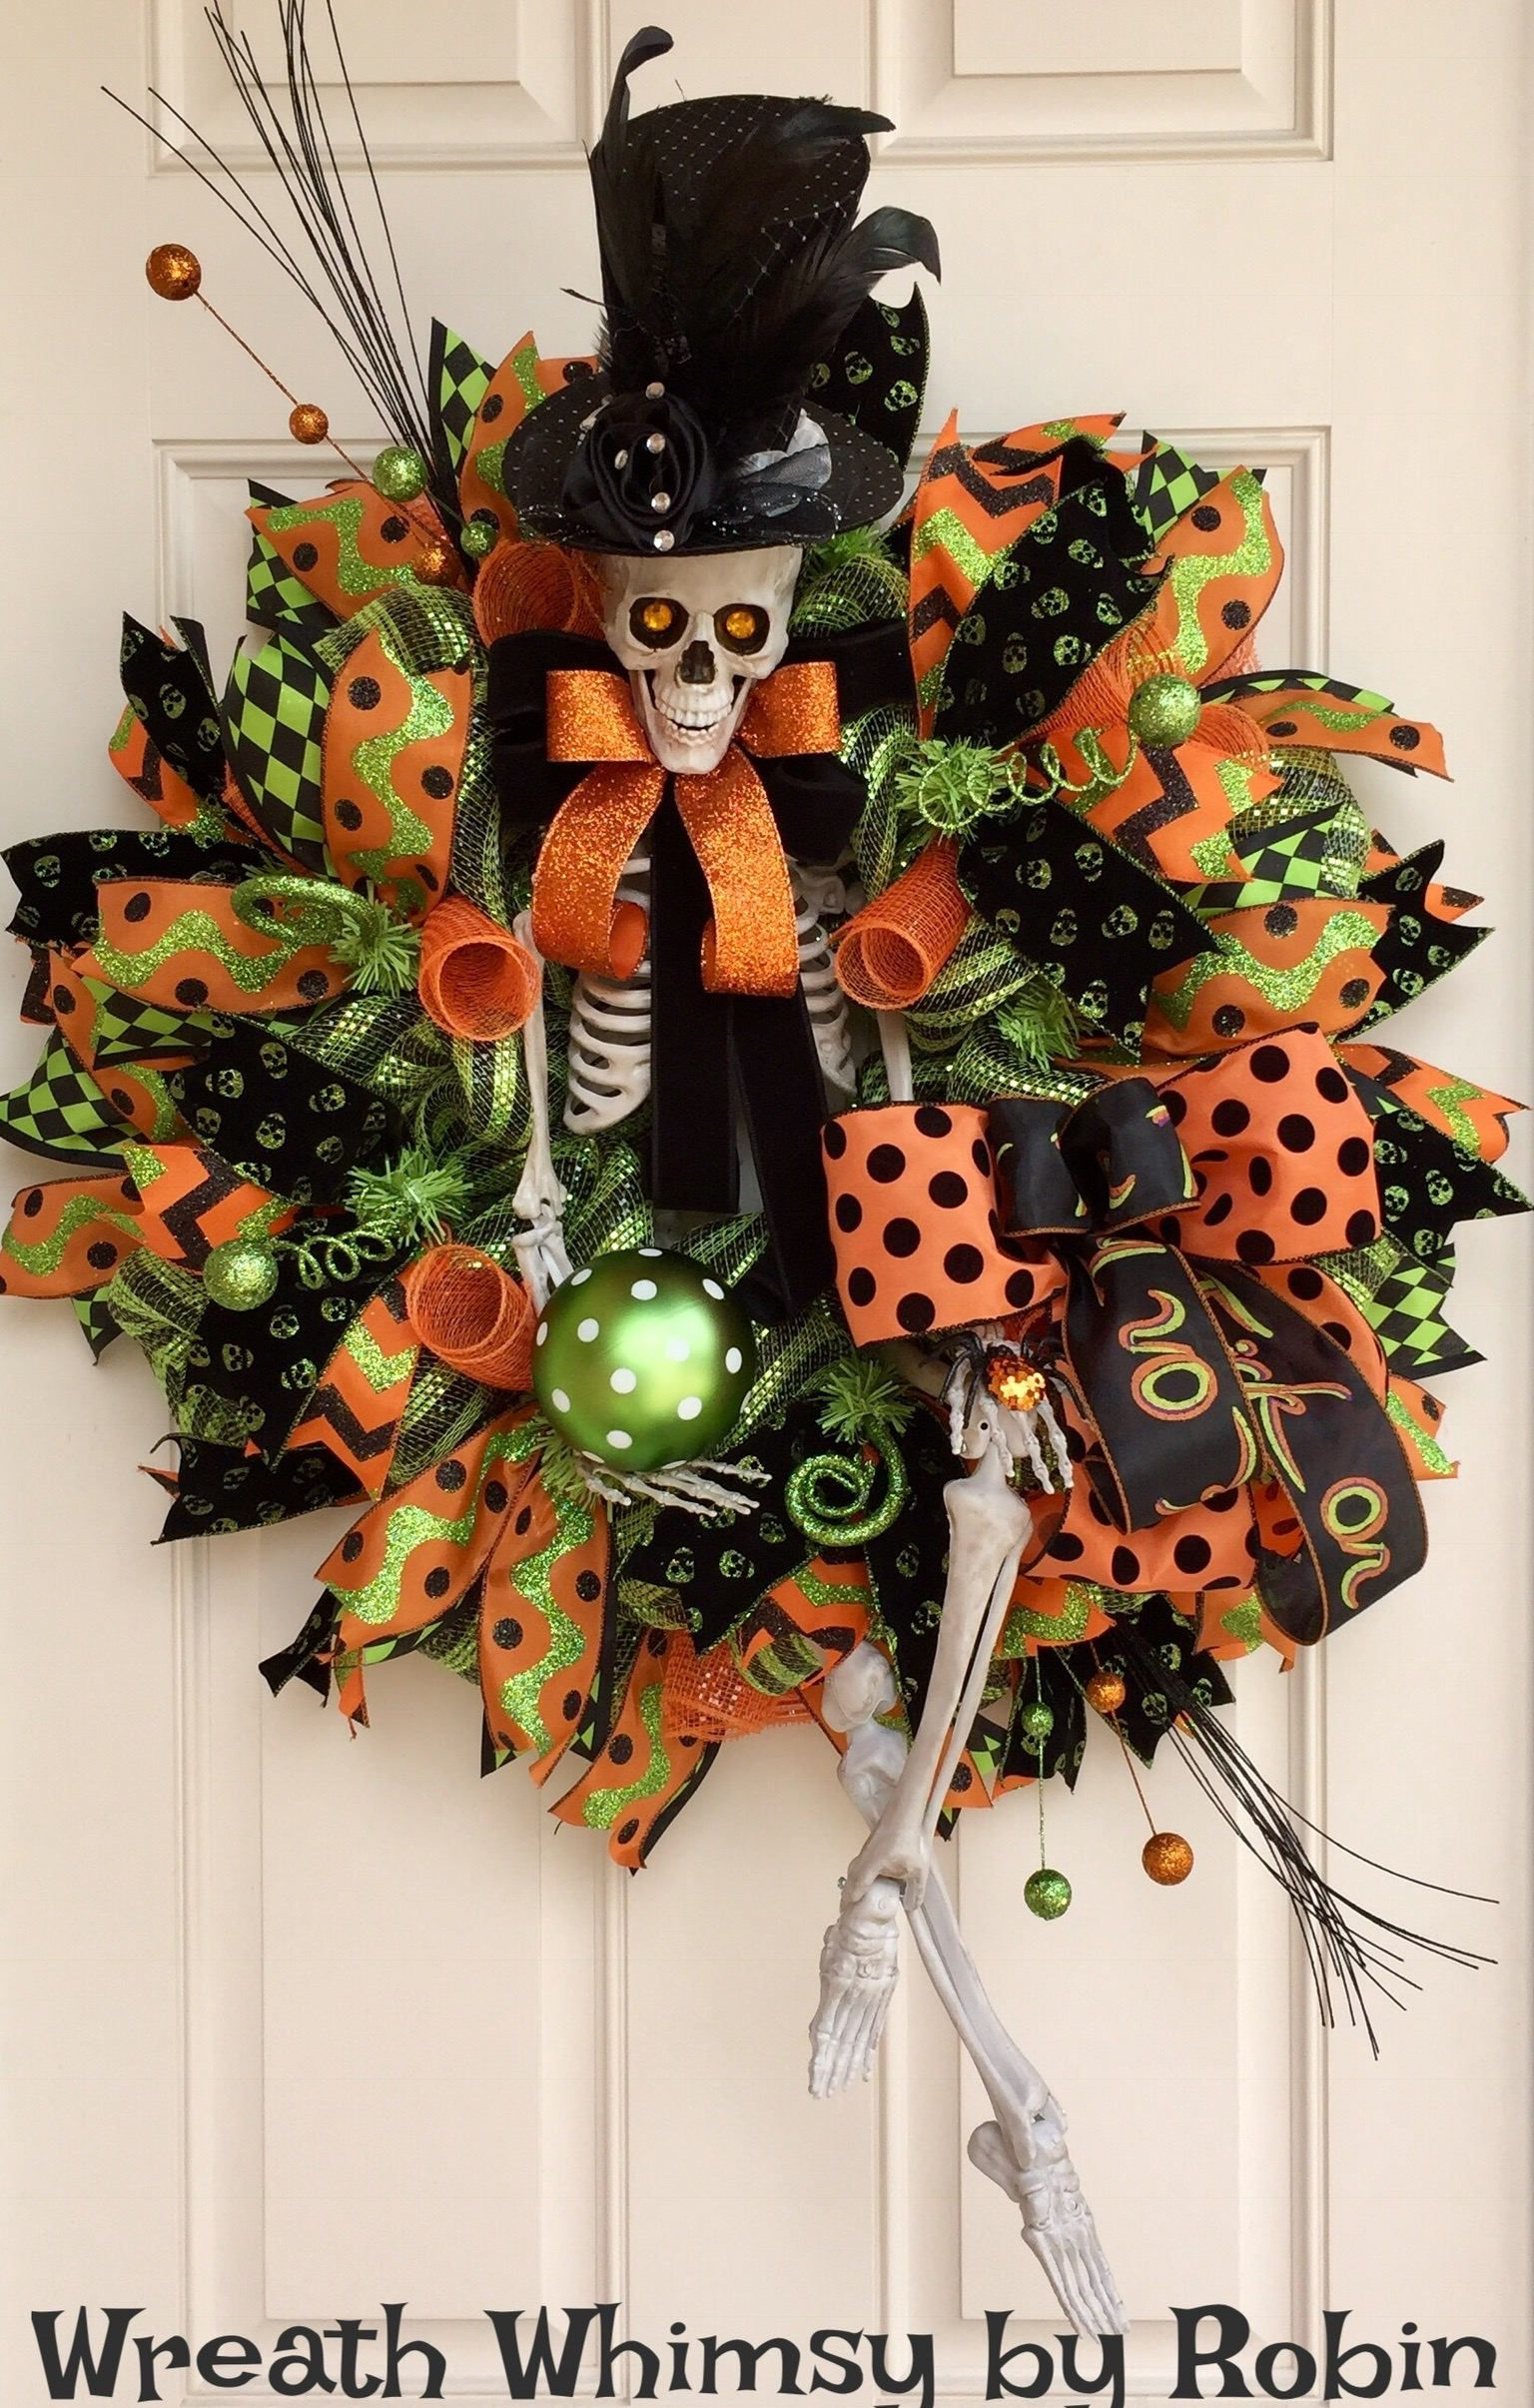 XL Halloween Deco Mesh Skeleton Wreath in Lime Green, Black  Orange - Whimsical Halloween Decorations